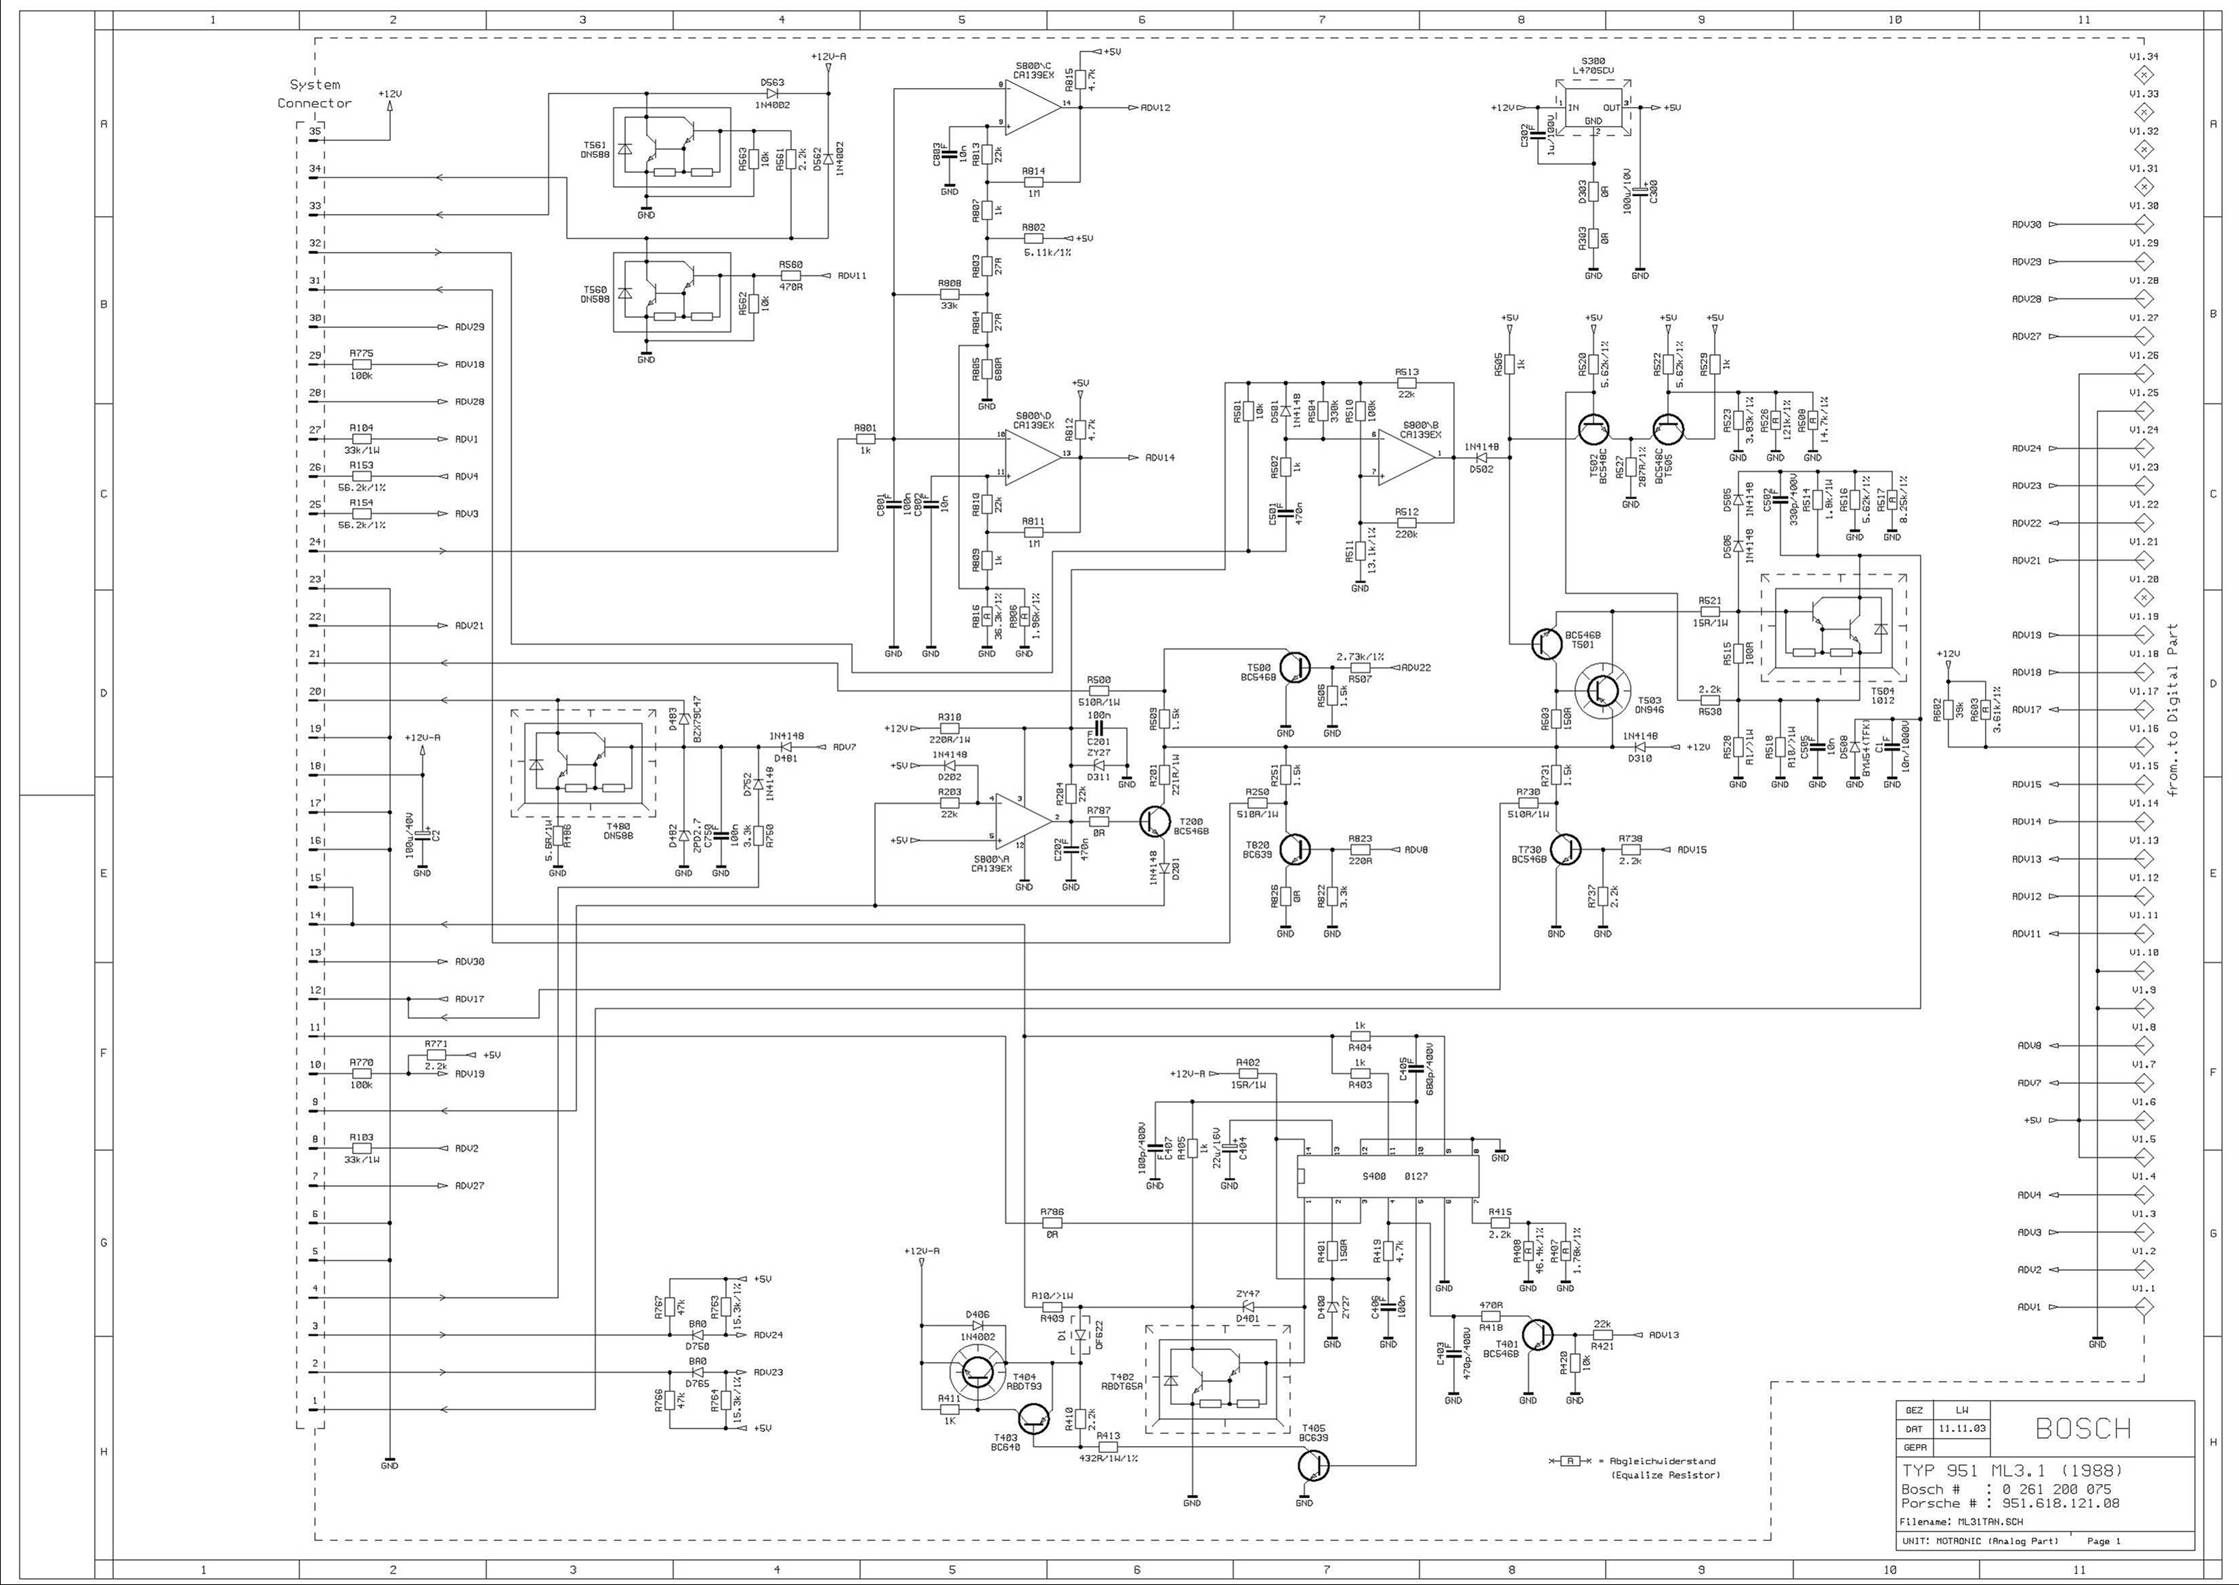 dme wiring diagram 944 turbo